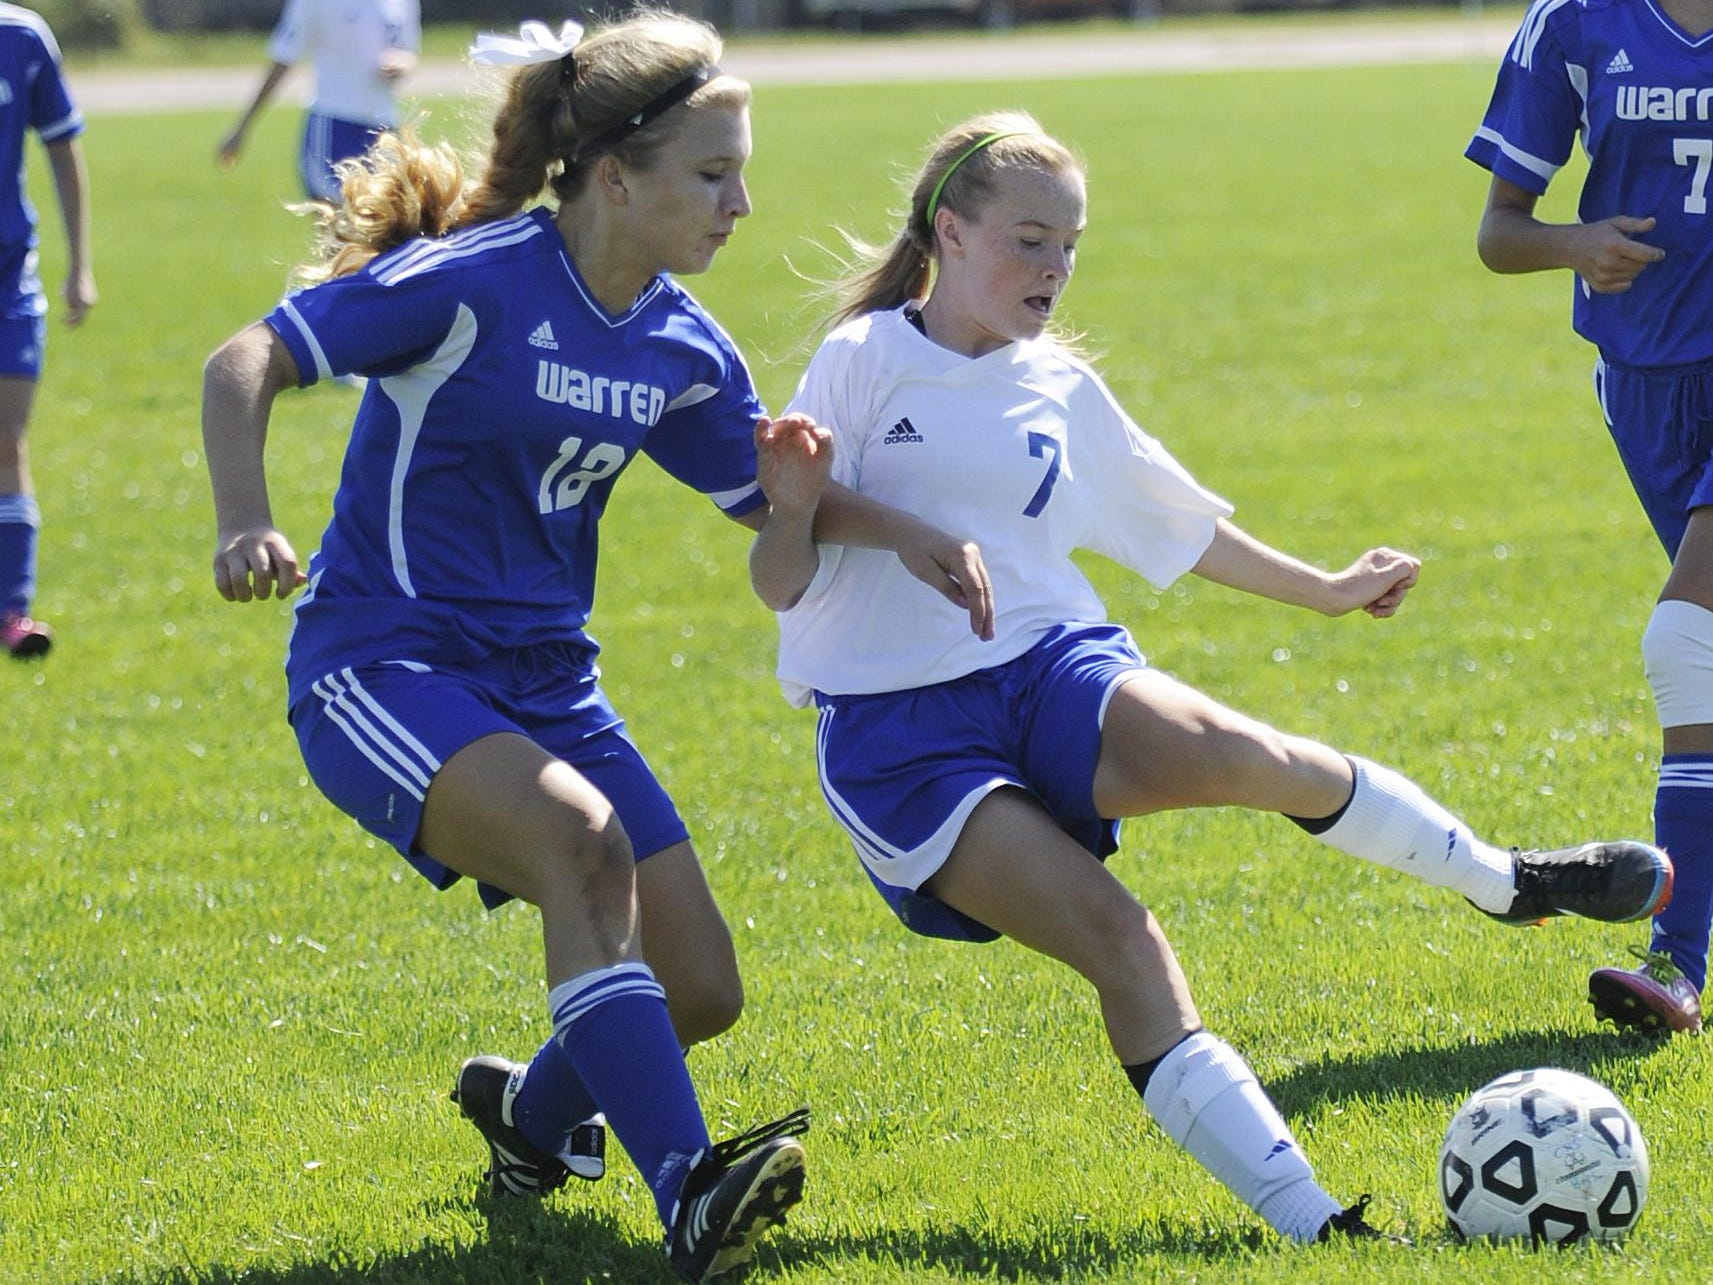 Chillicothe's Payten Davis tries to get around Warren's Emma Yabs during a 2013 game at McVicker Field. Davis, now a junior, will come into the 2015 season with 50 career goals.